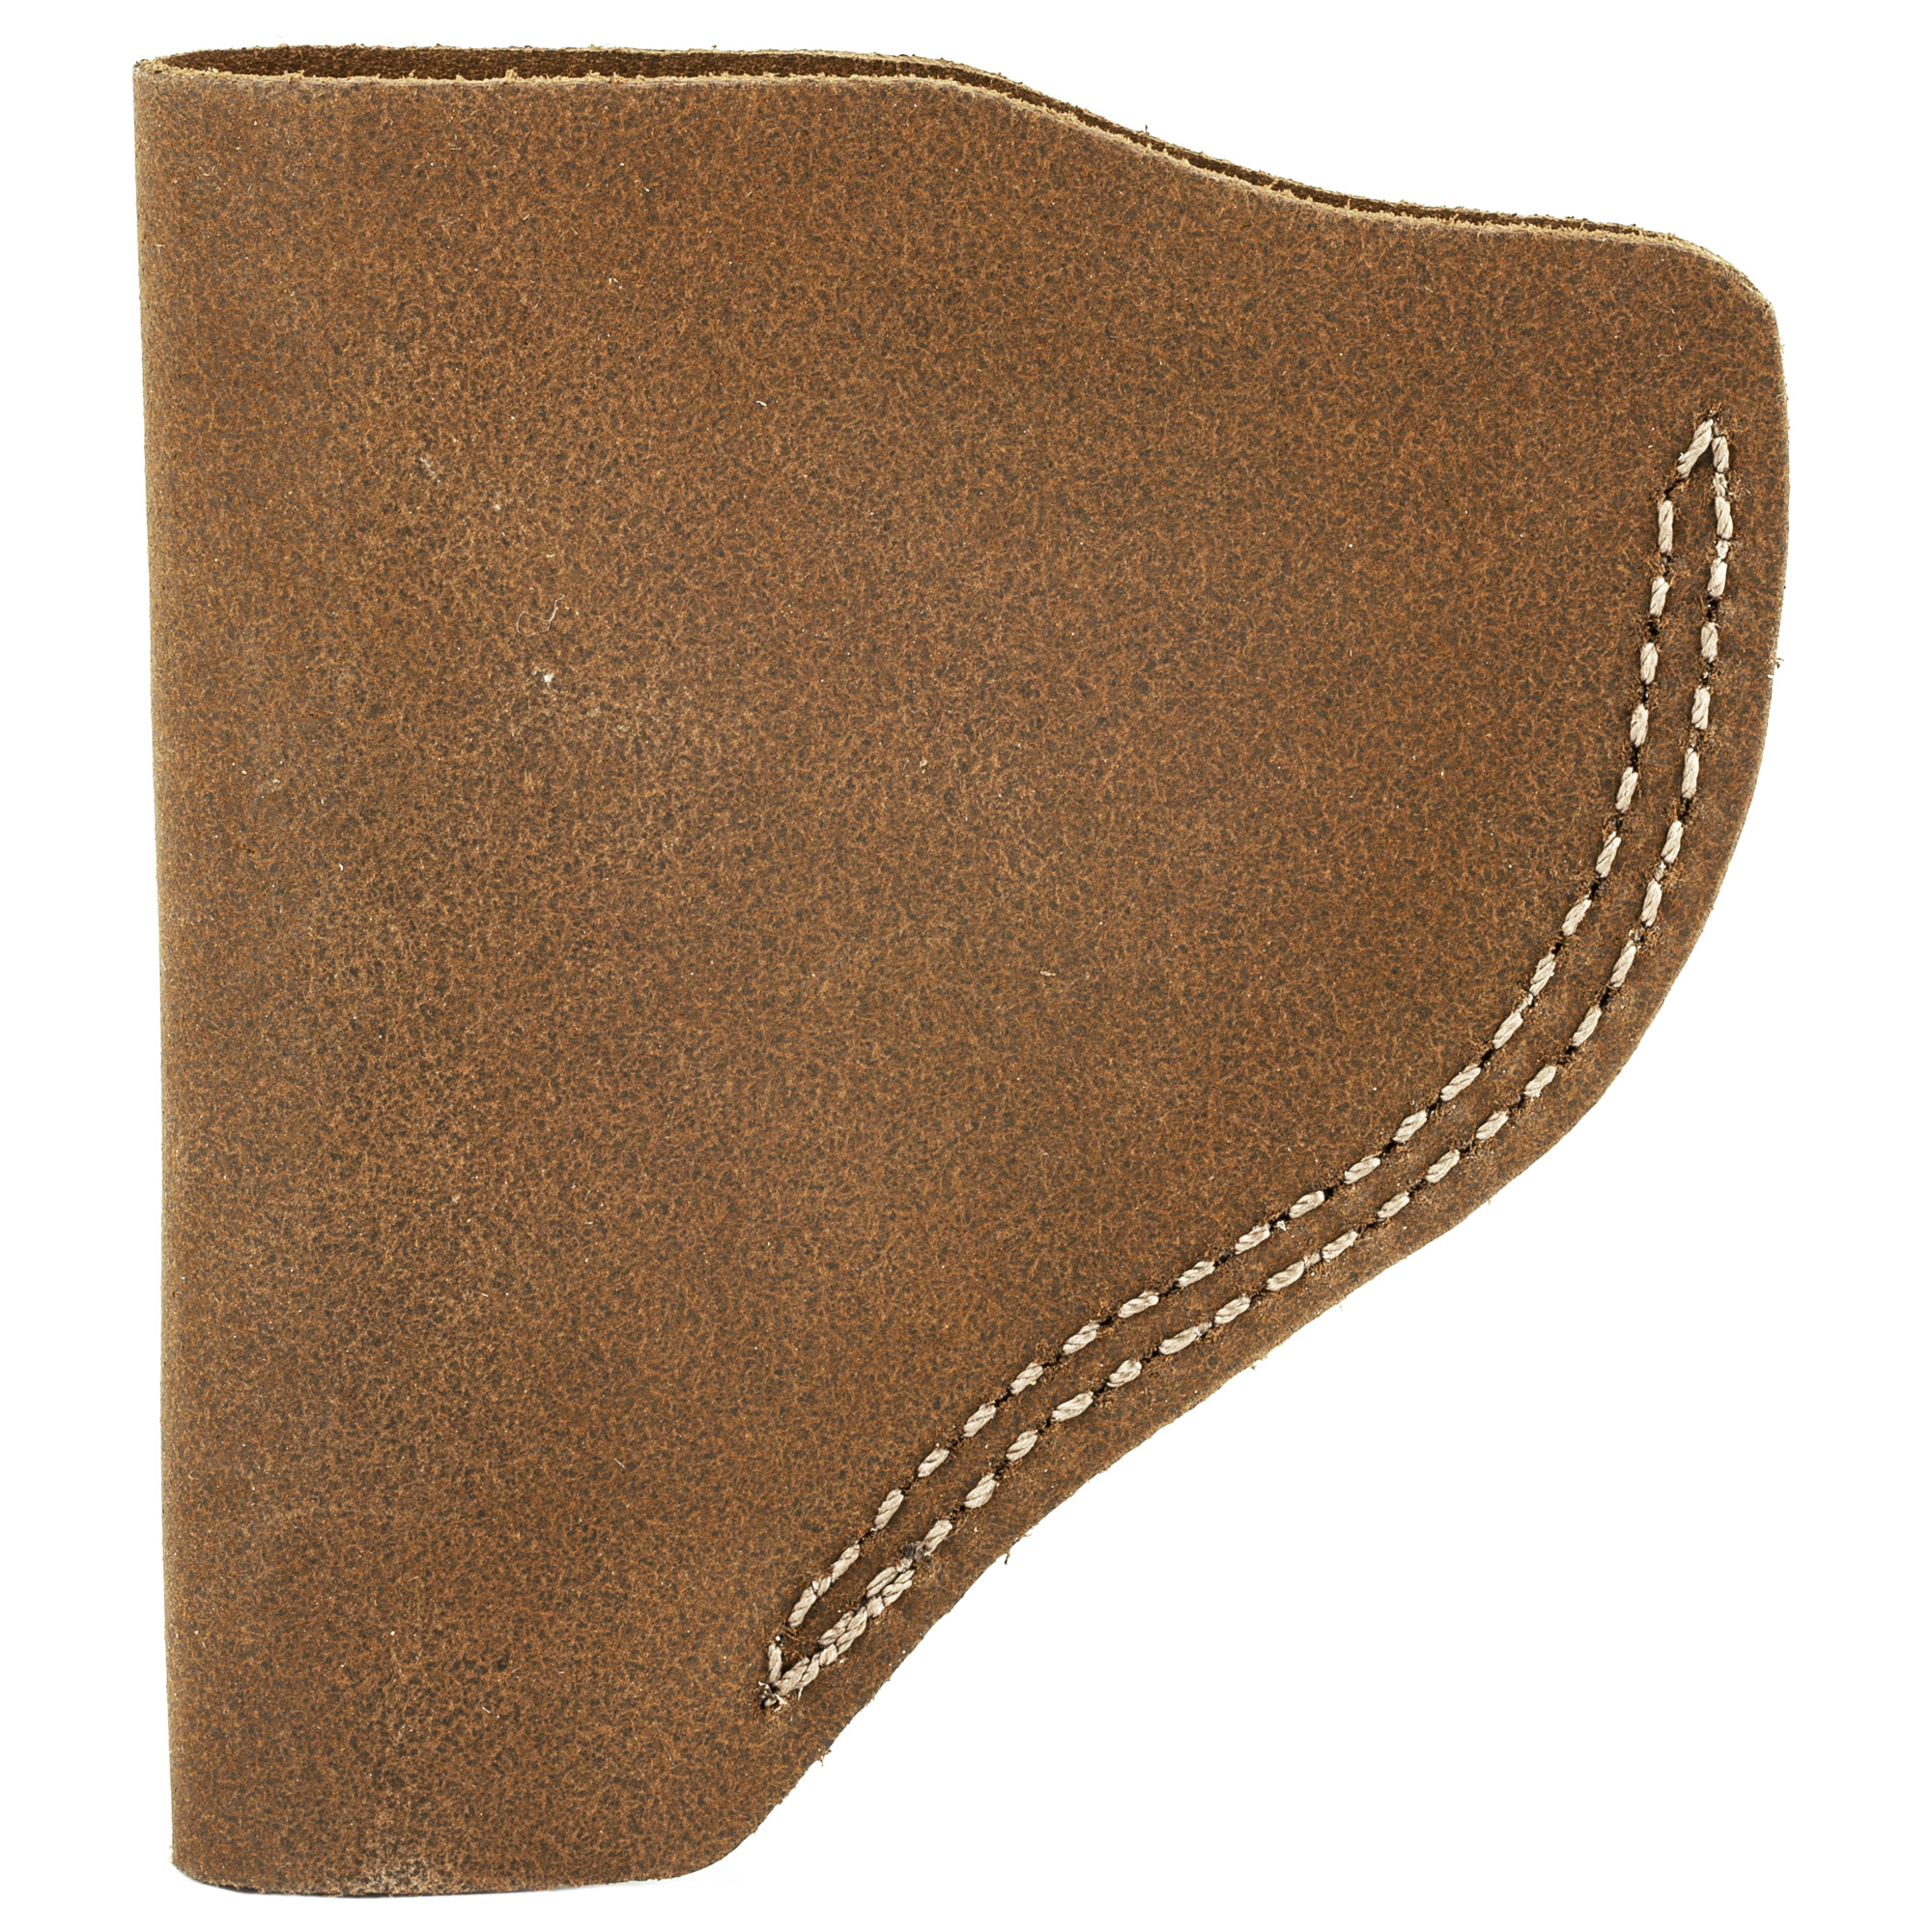 This ultra lightweight inside the waistband holster is made of a soft suede with an open top for quick access to the weapon. The heavy duty spring-steel clip holds the holster firmly to the belt or waistband for a secure draw.